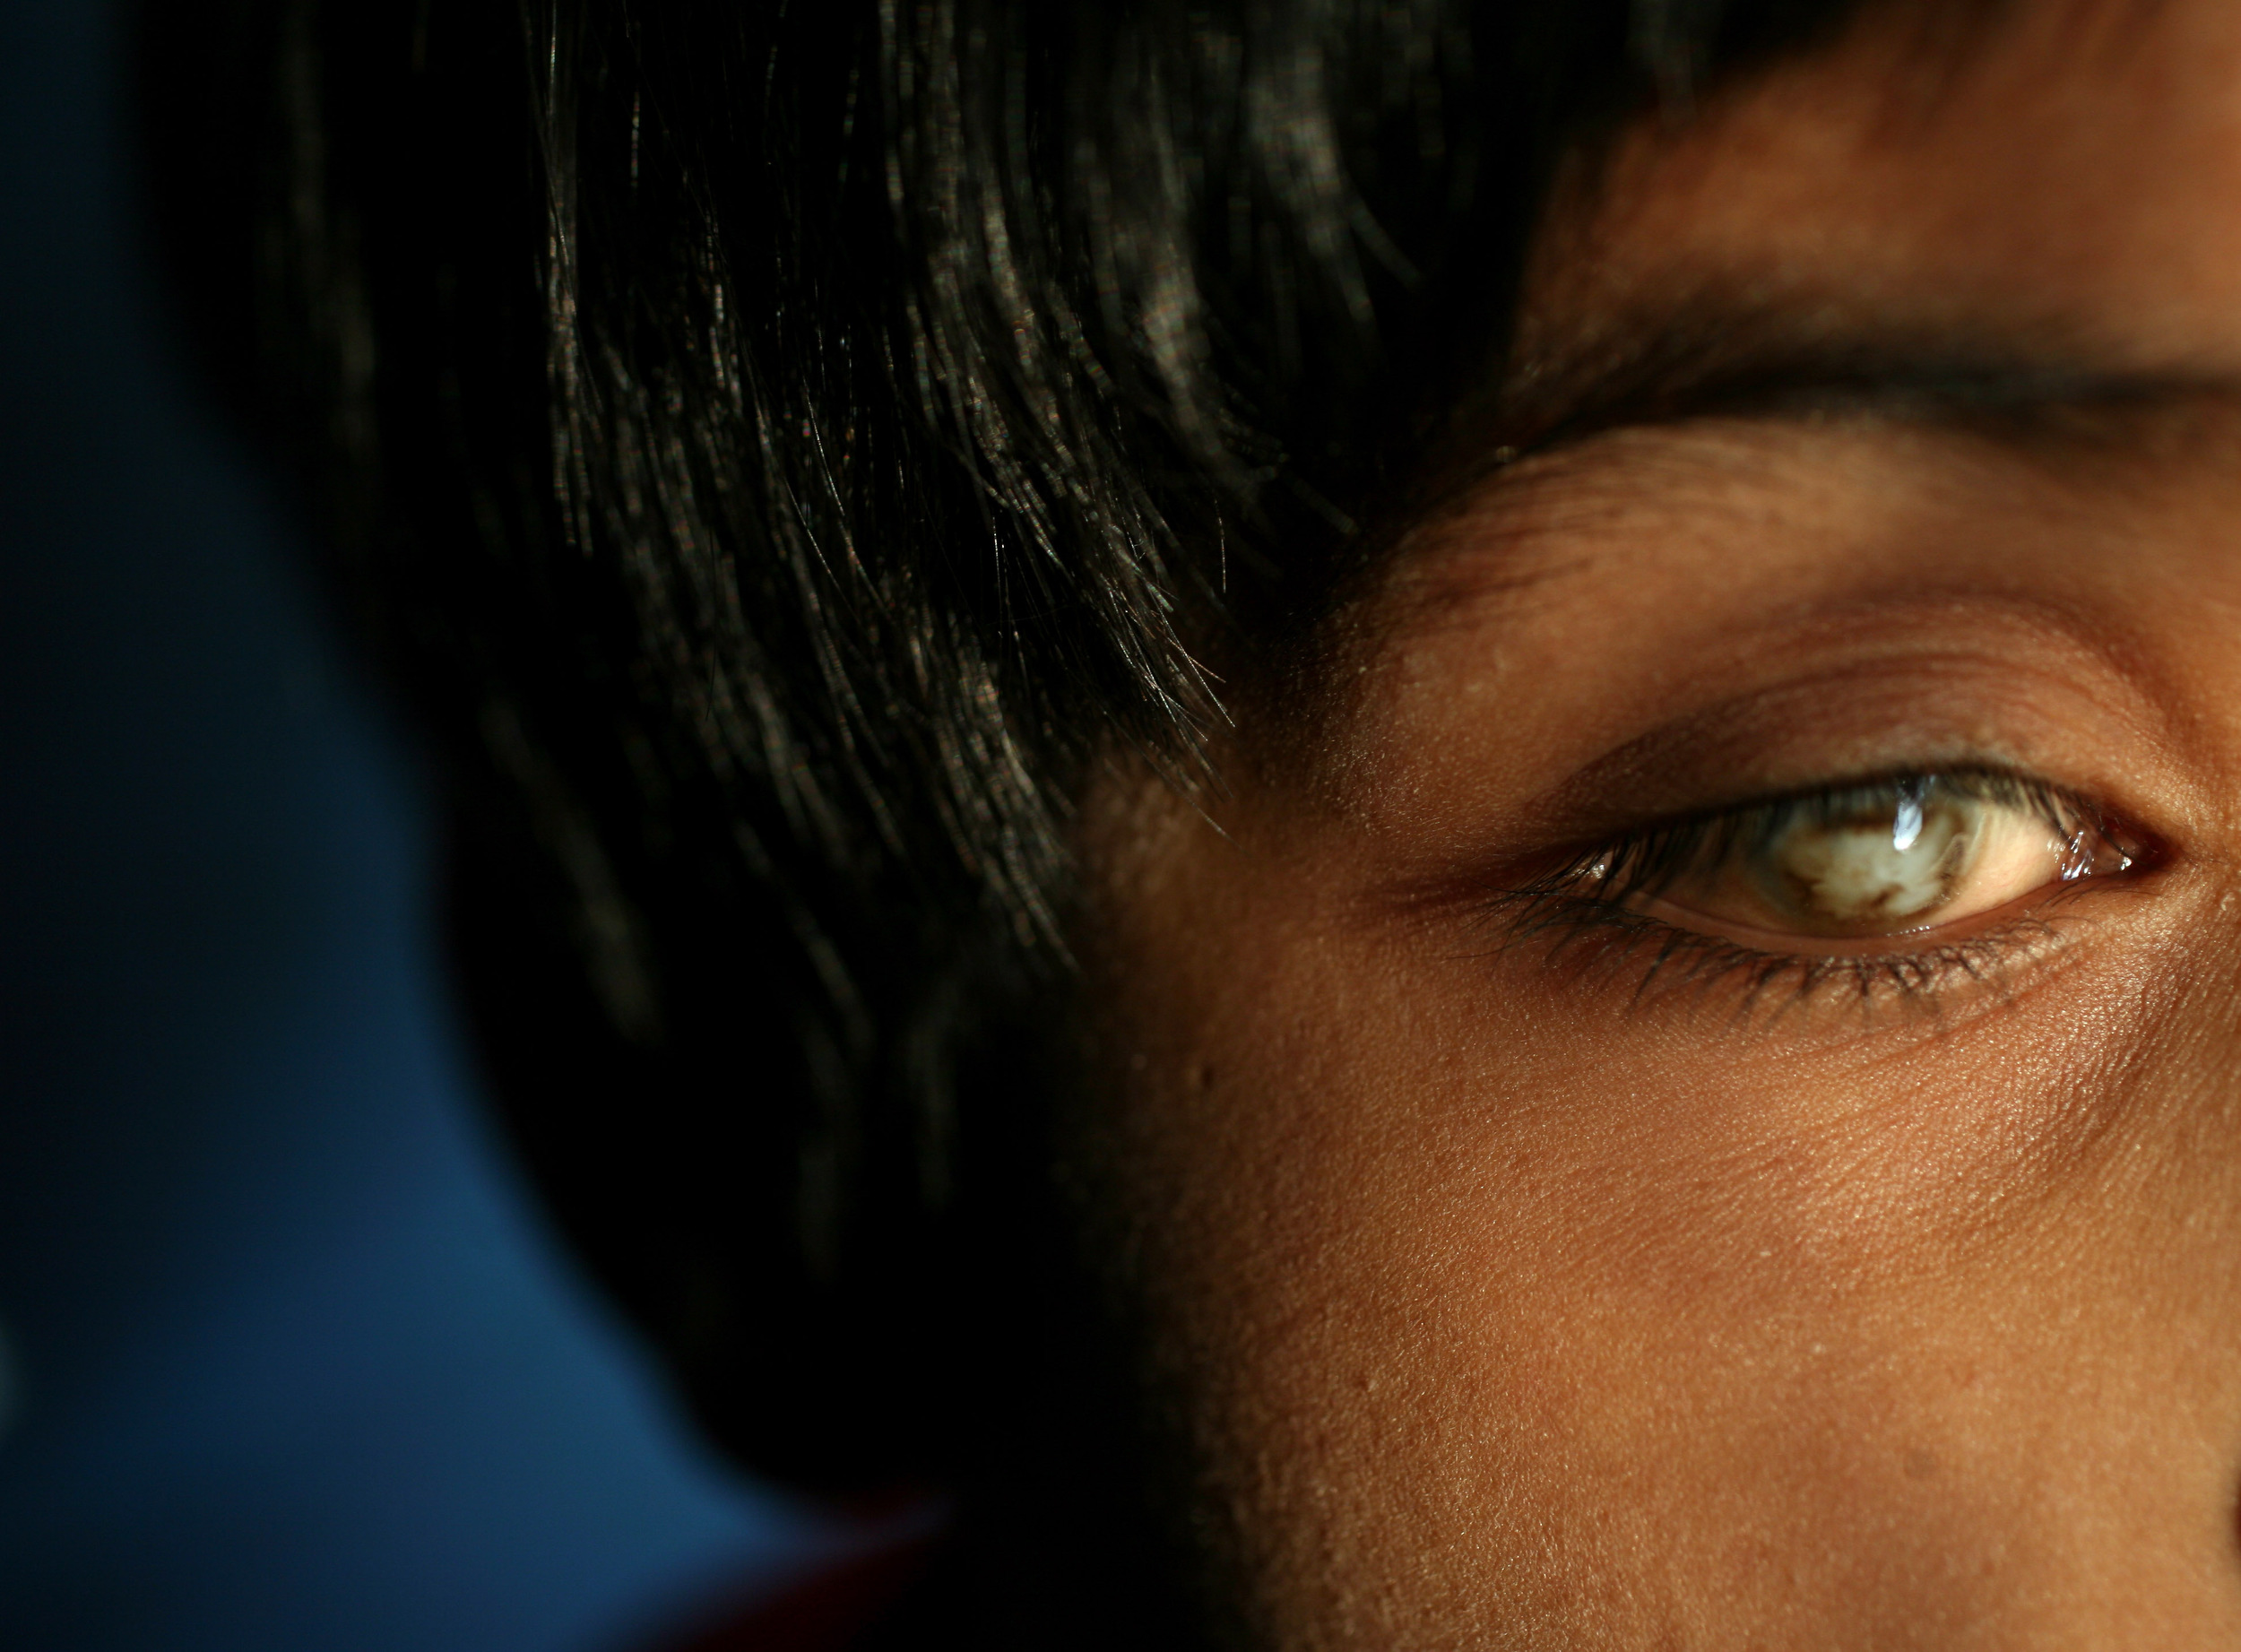 Kajal Zaidi, a 5-year-old blinded by child abuse and abandoned by her parents in a train station in India, was rescued by a small shelter home in Allahabad, India. In 2007, churchgoers in Nashville, Tennessee brought her to the U.S., for specialized eye-surgery and attempted to find her an adopted family. Her journey was fraught with complications and heartbreak.   Kajal Zaidi, age 5, at the Snehlayam Shelter Home.